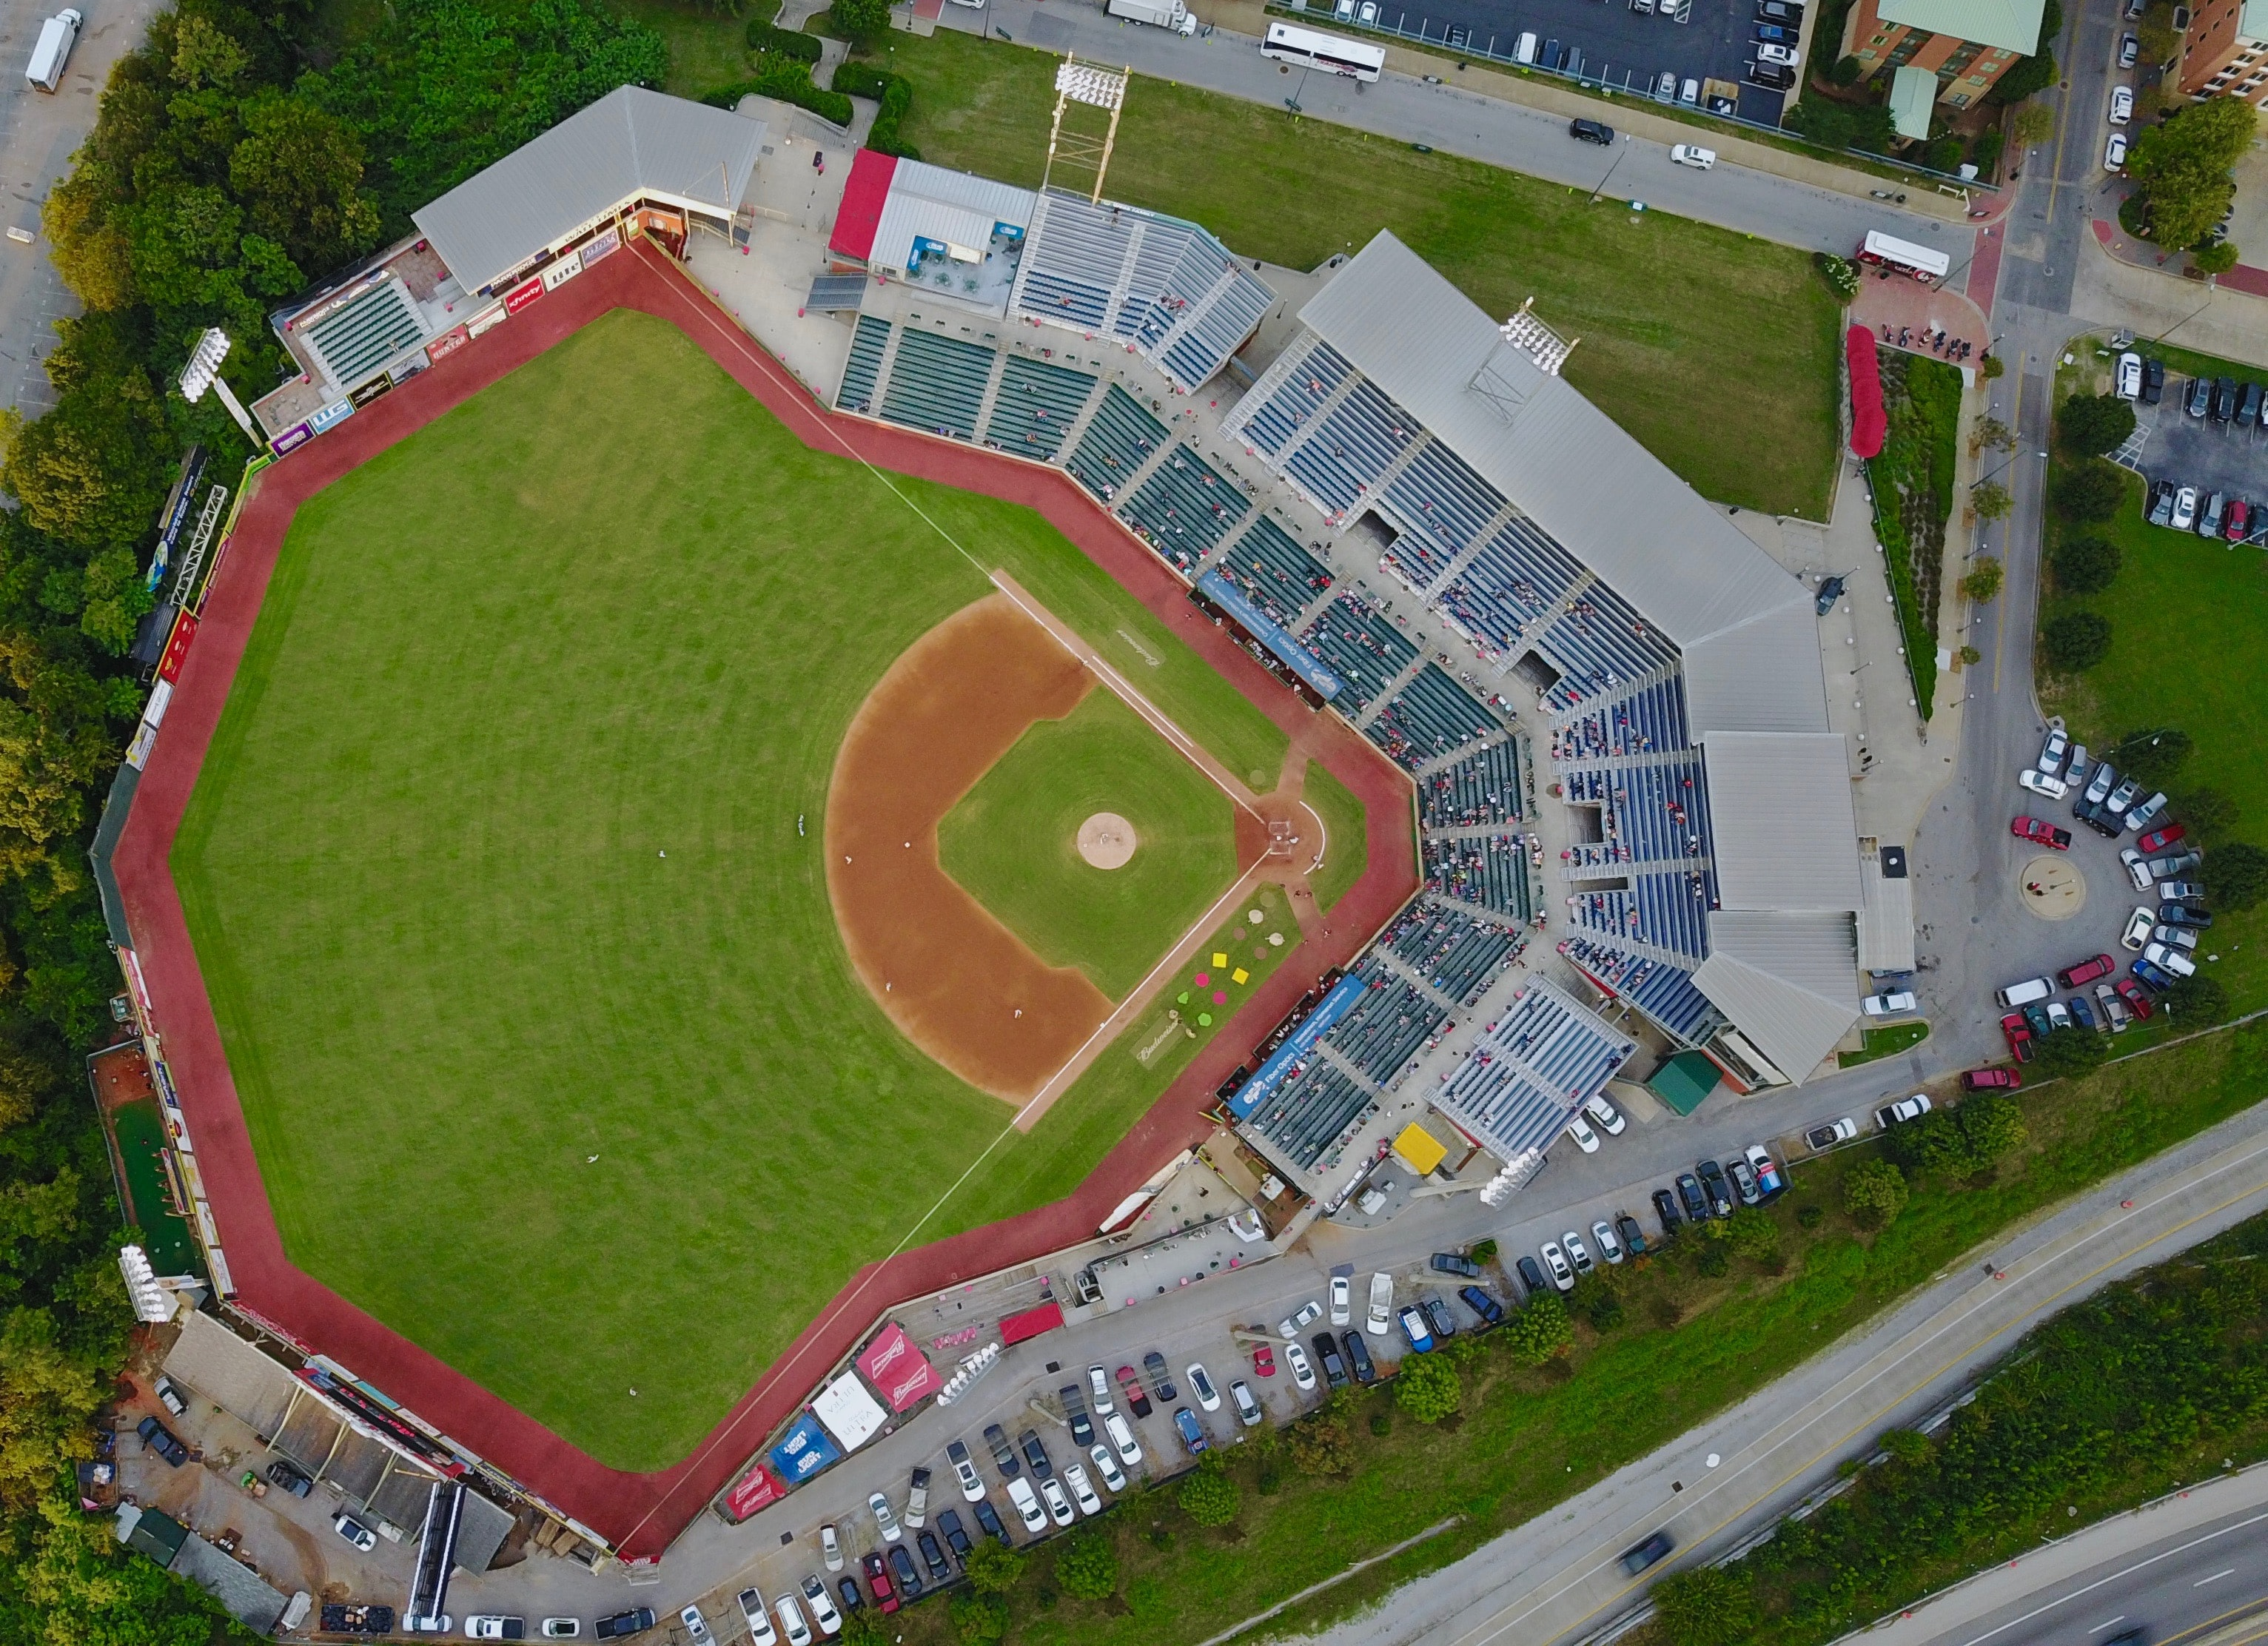 aerial view photo of baseball field